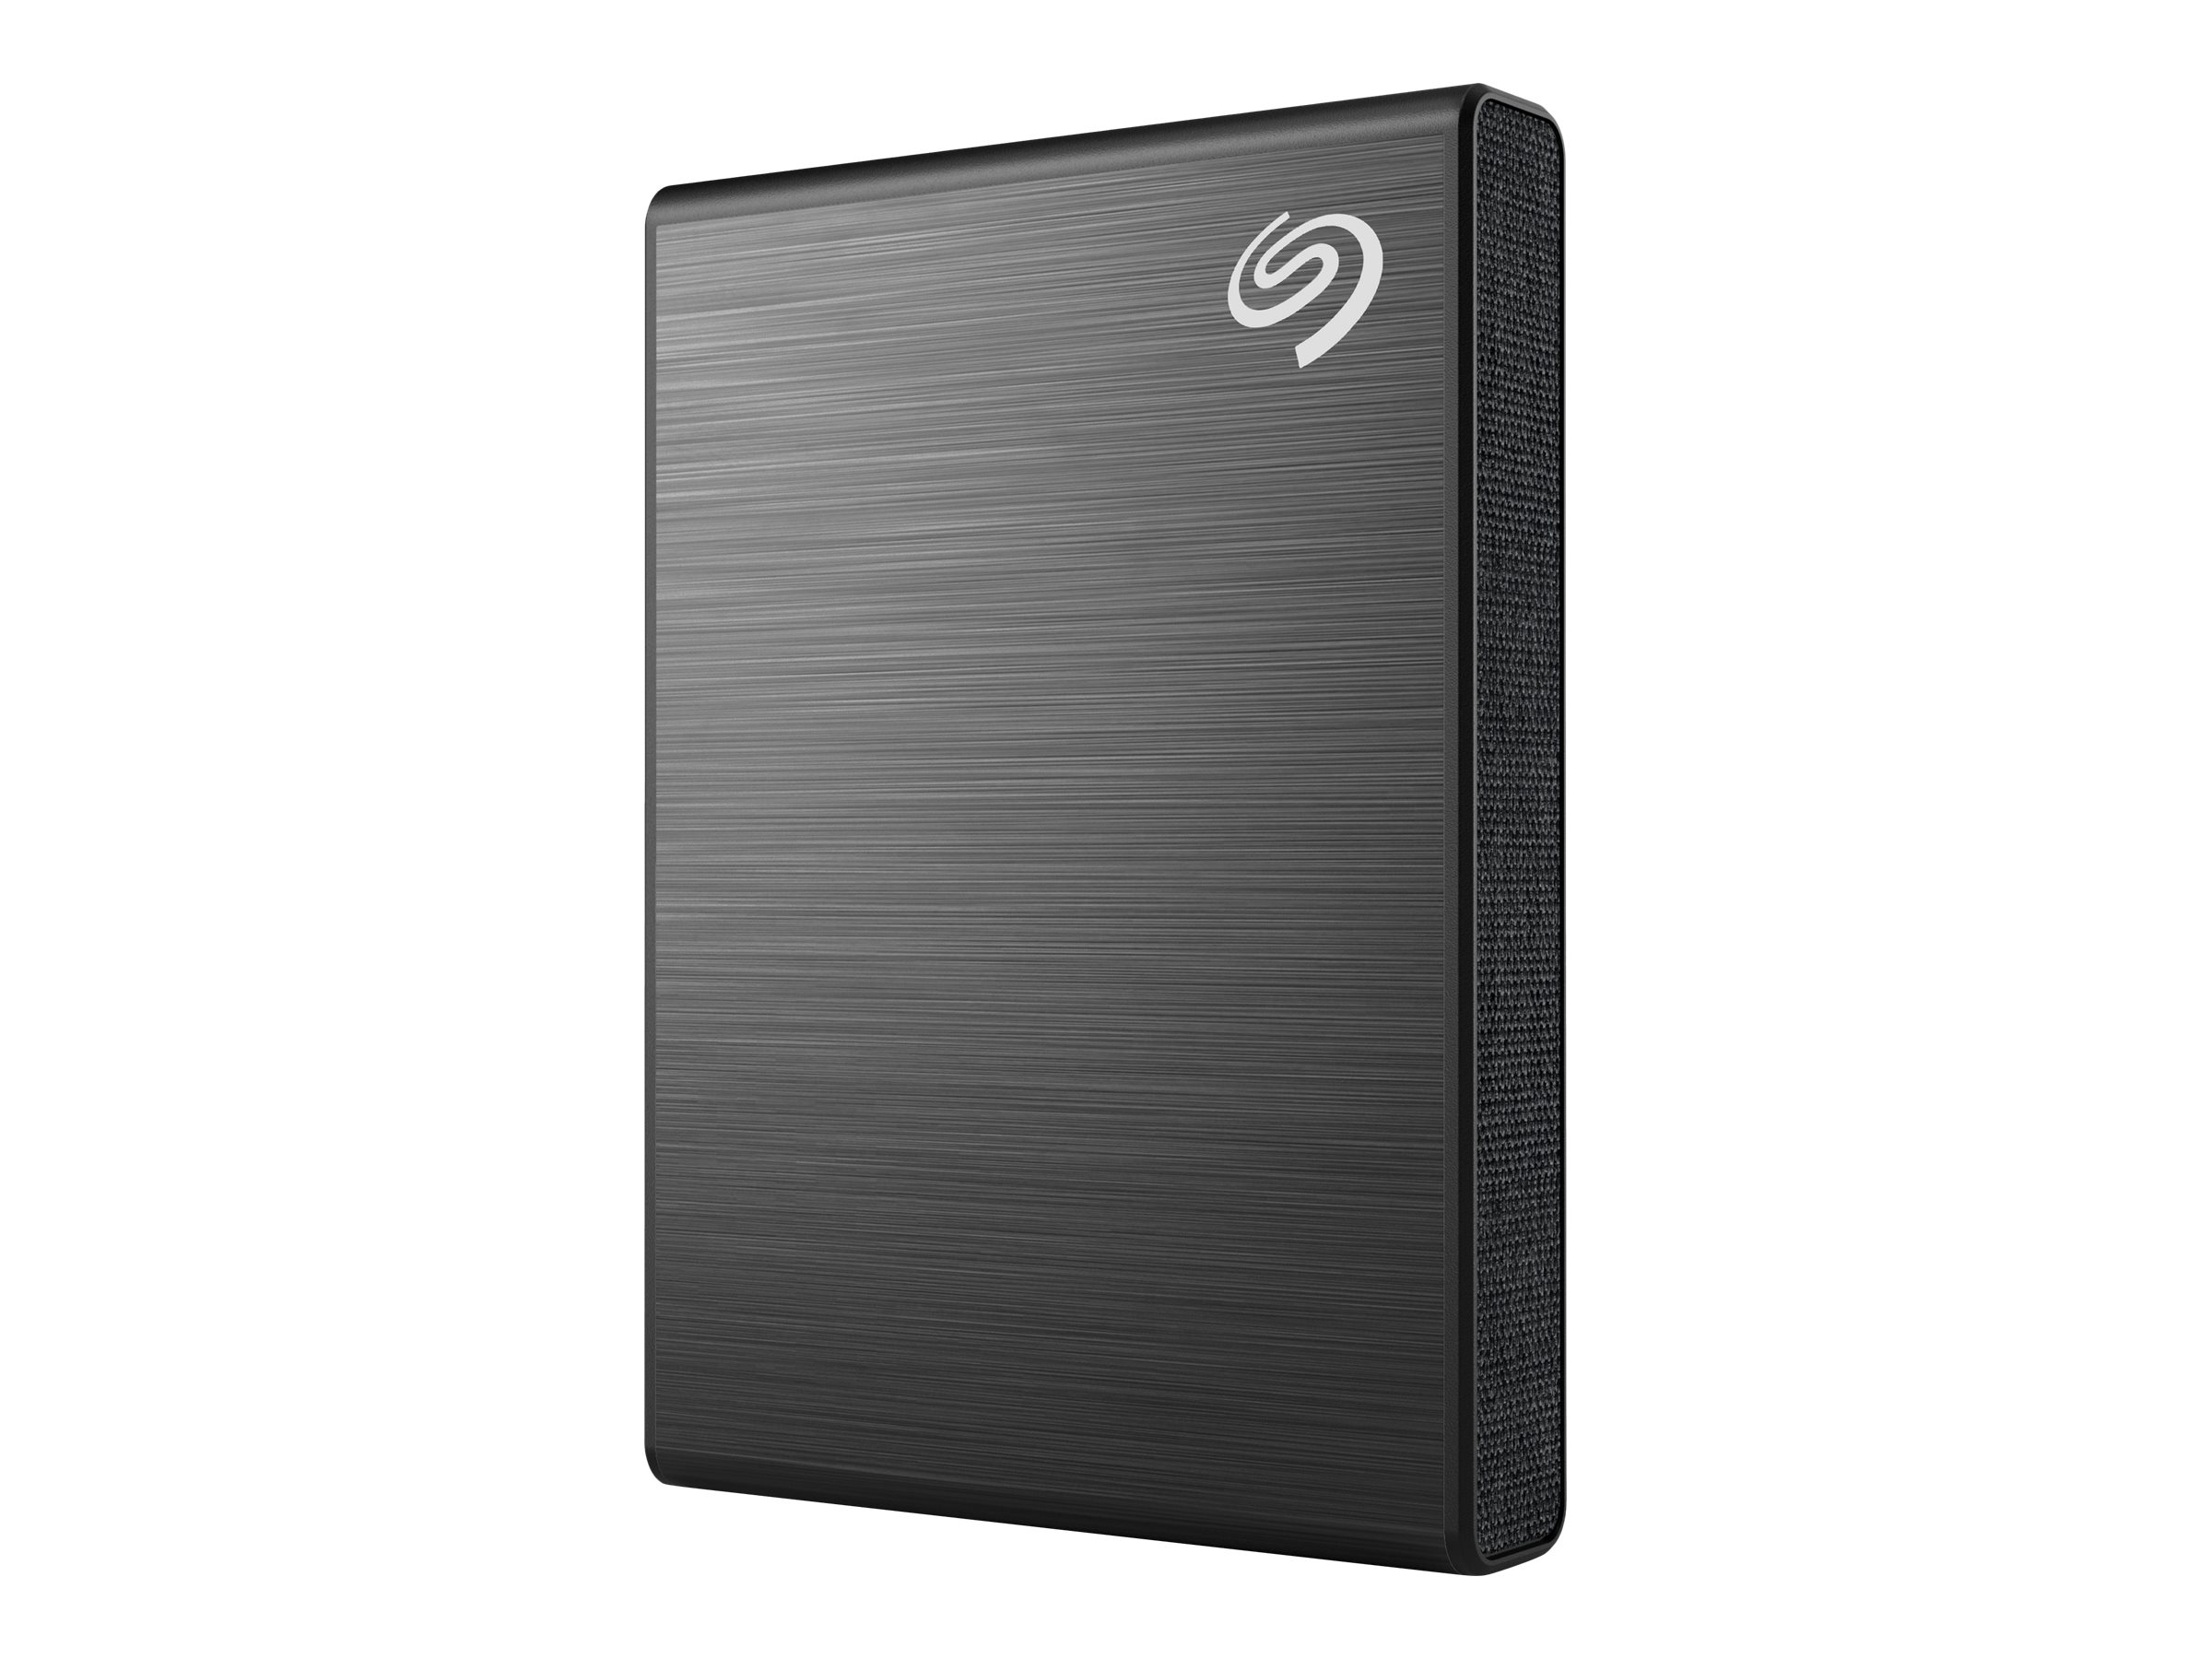 Seagate One Touch SSD STKG500401 - Solid-State-Disk - 500 GB - extern (tragbar) - USB 3.0 (USB-C Steckverbinder) - Silber